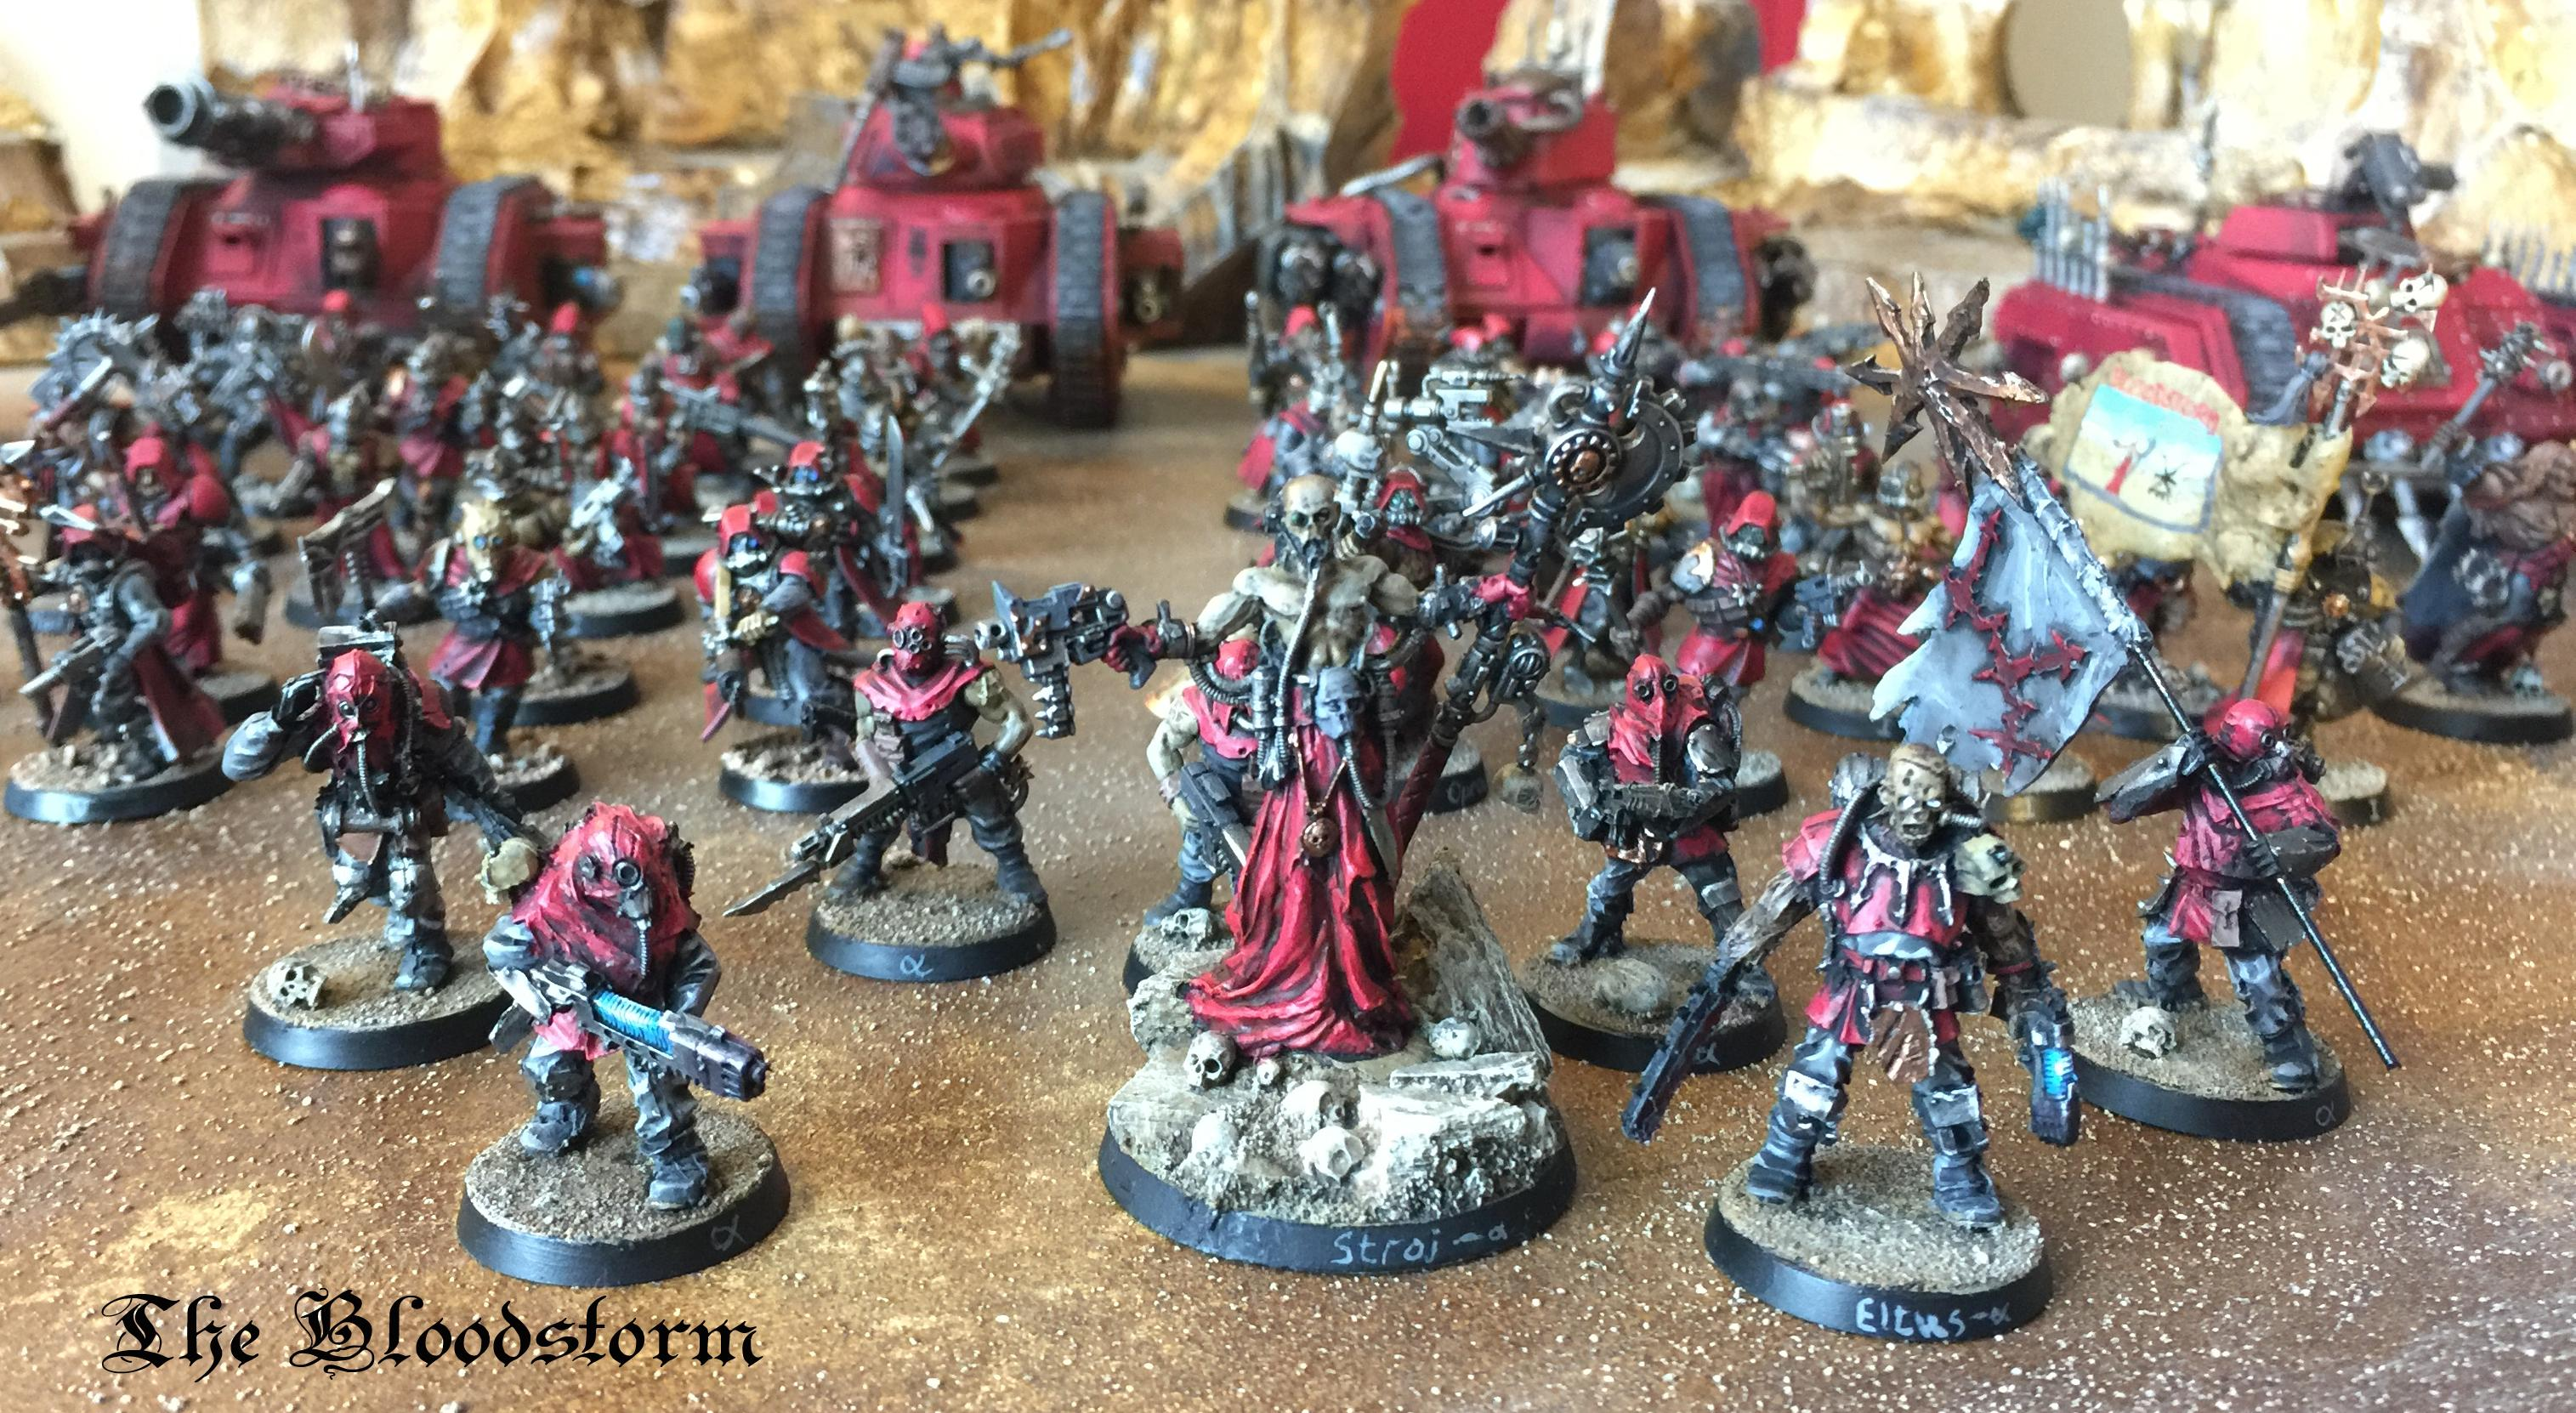 Army, Chaos, Cultists, Forge World, Khorne, Renegades, Traitors, Warhammer 40,000